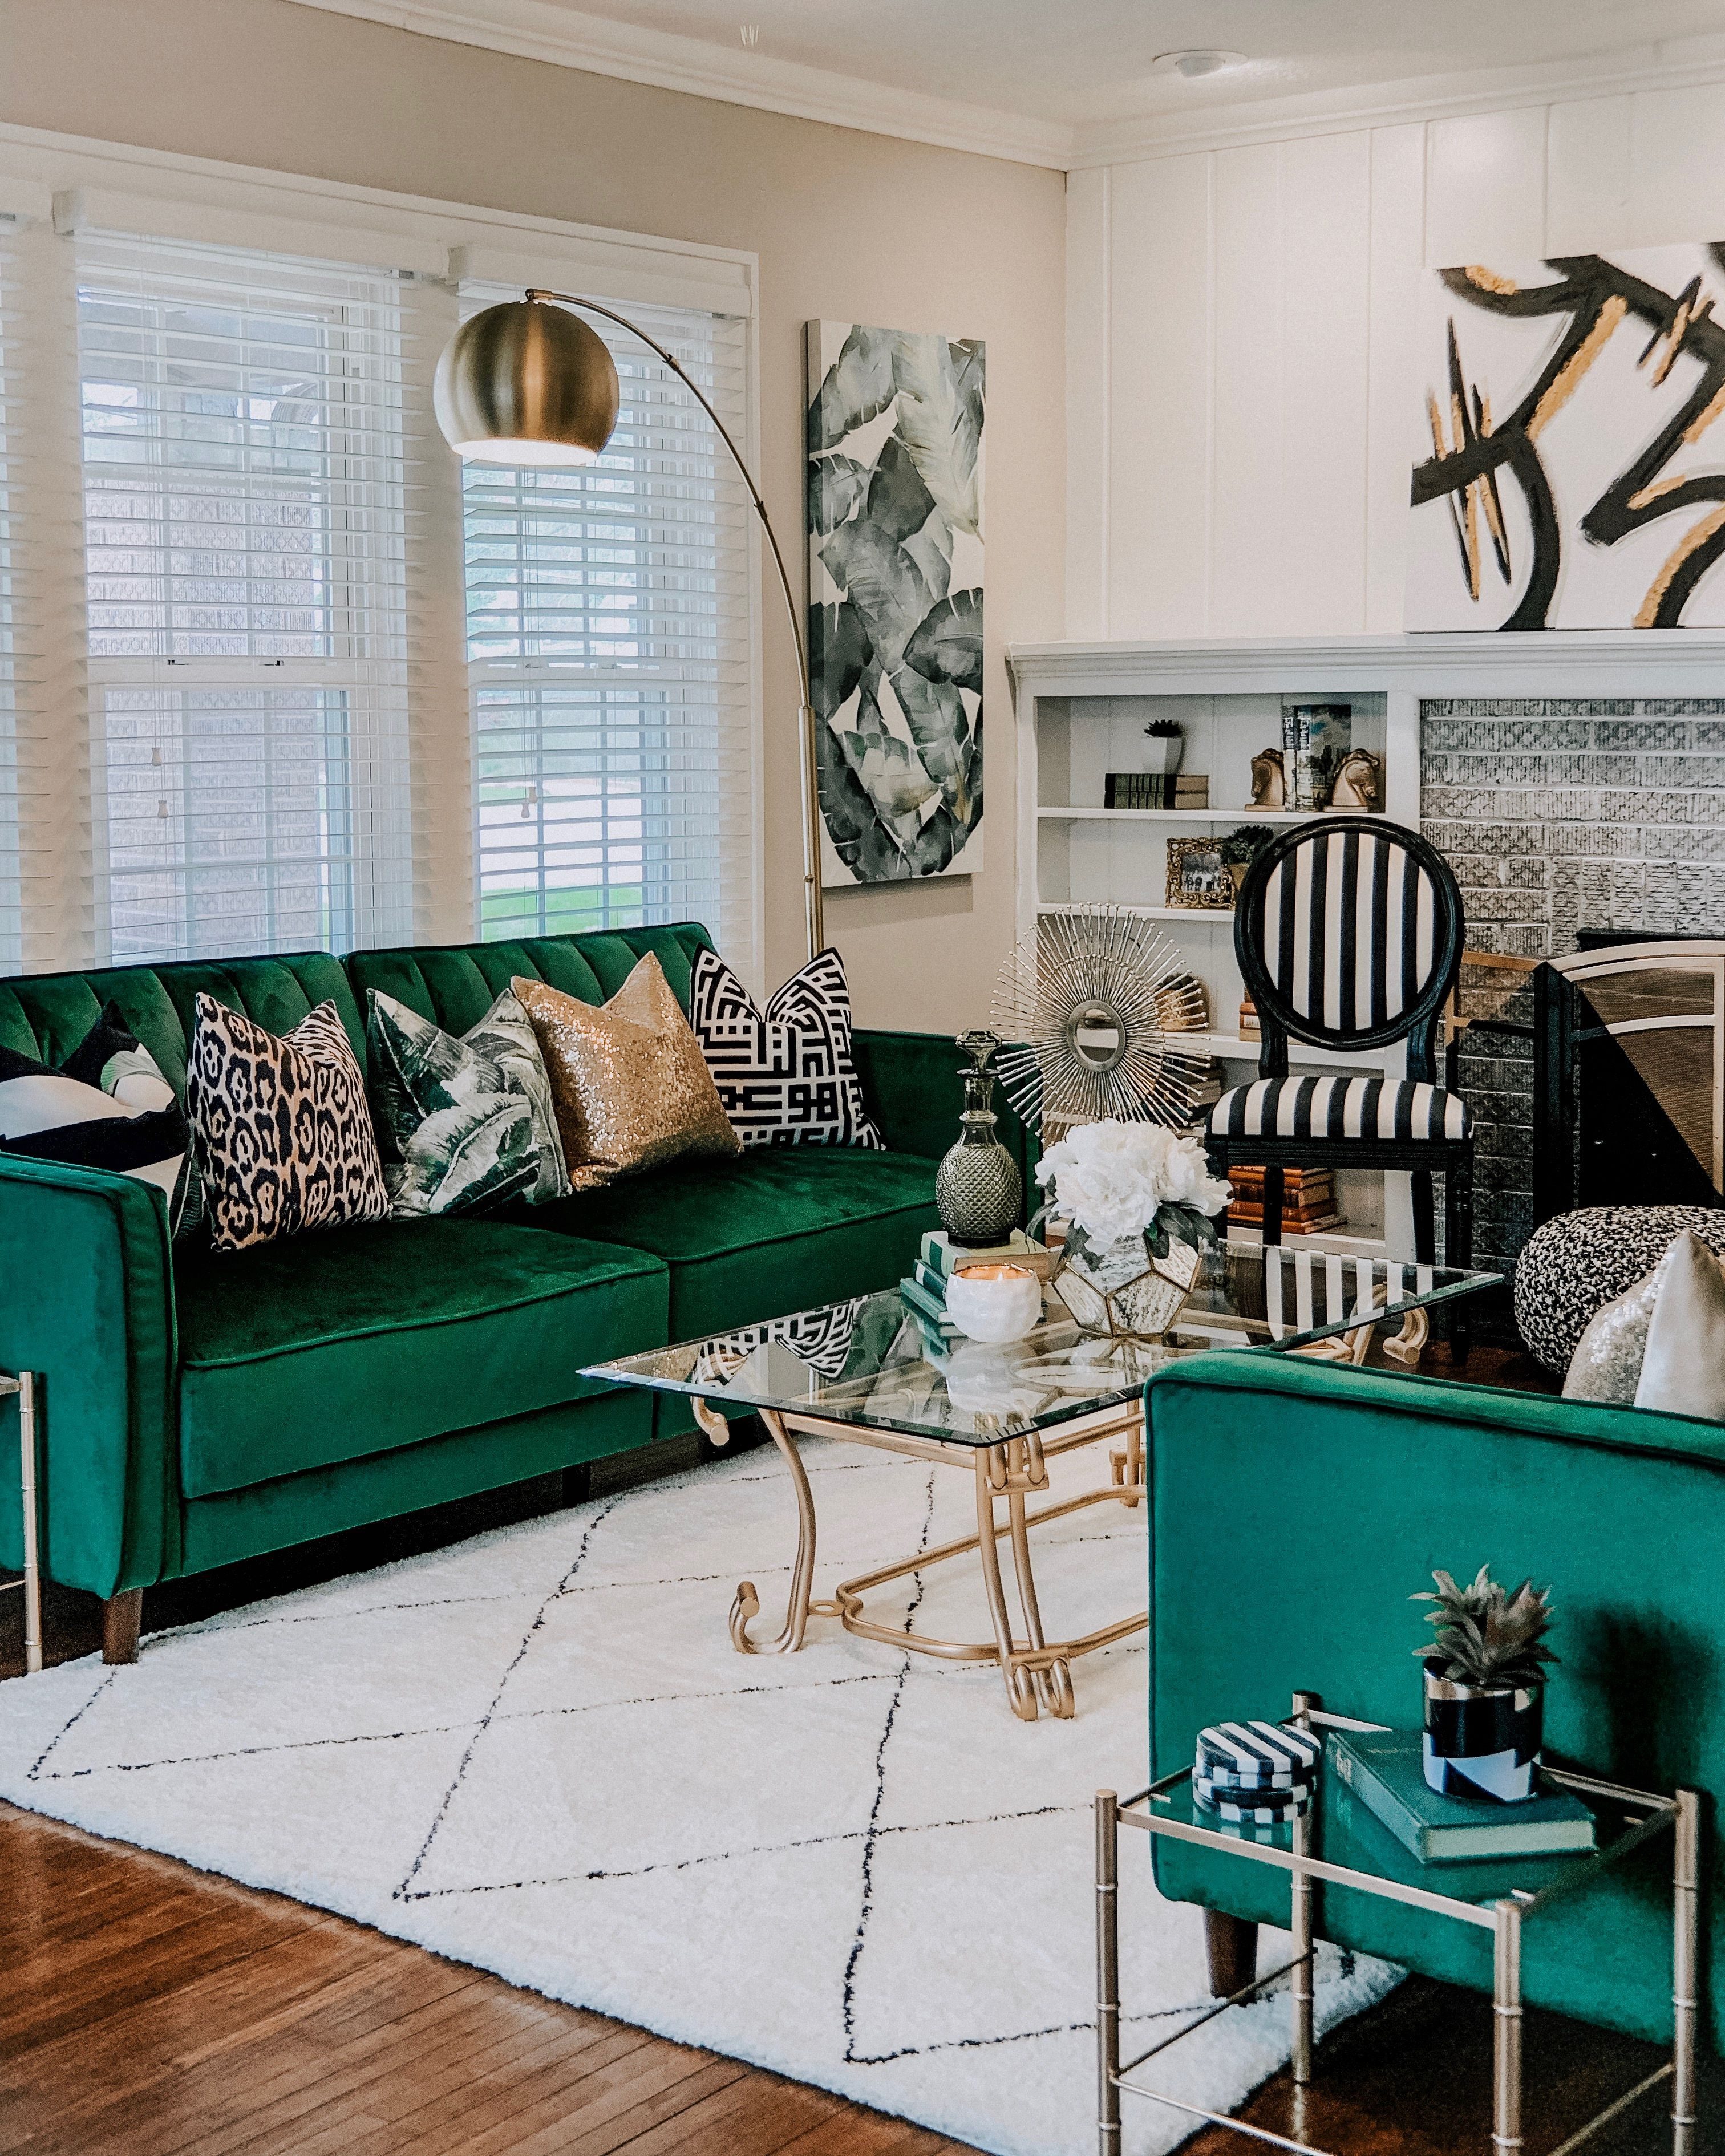 Modern Glam Living Room Decorating Ideas 19: Glam, Mid-Century, Modern, French Chic, Tropical Living